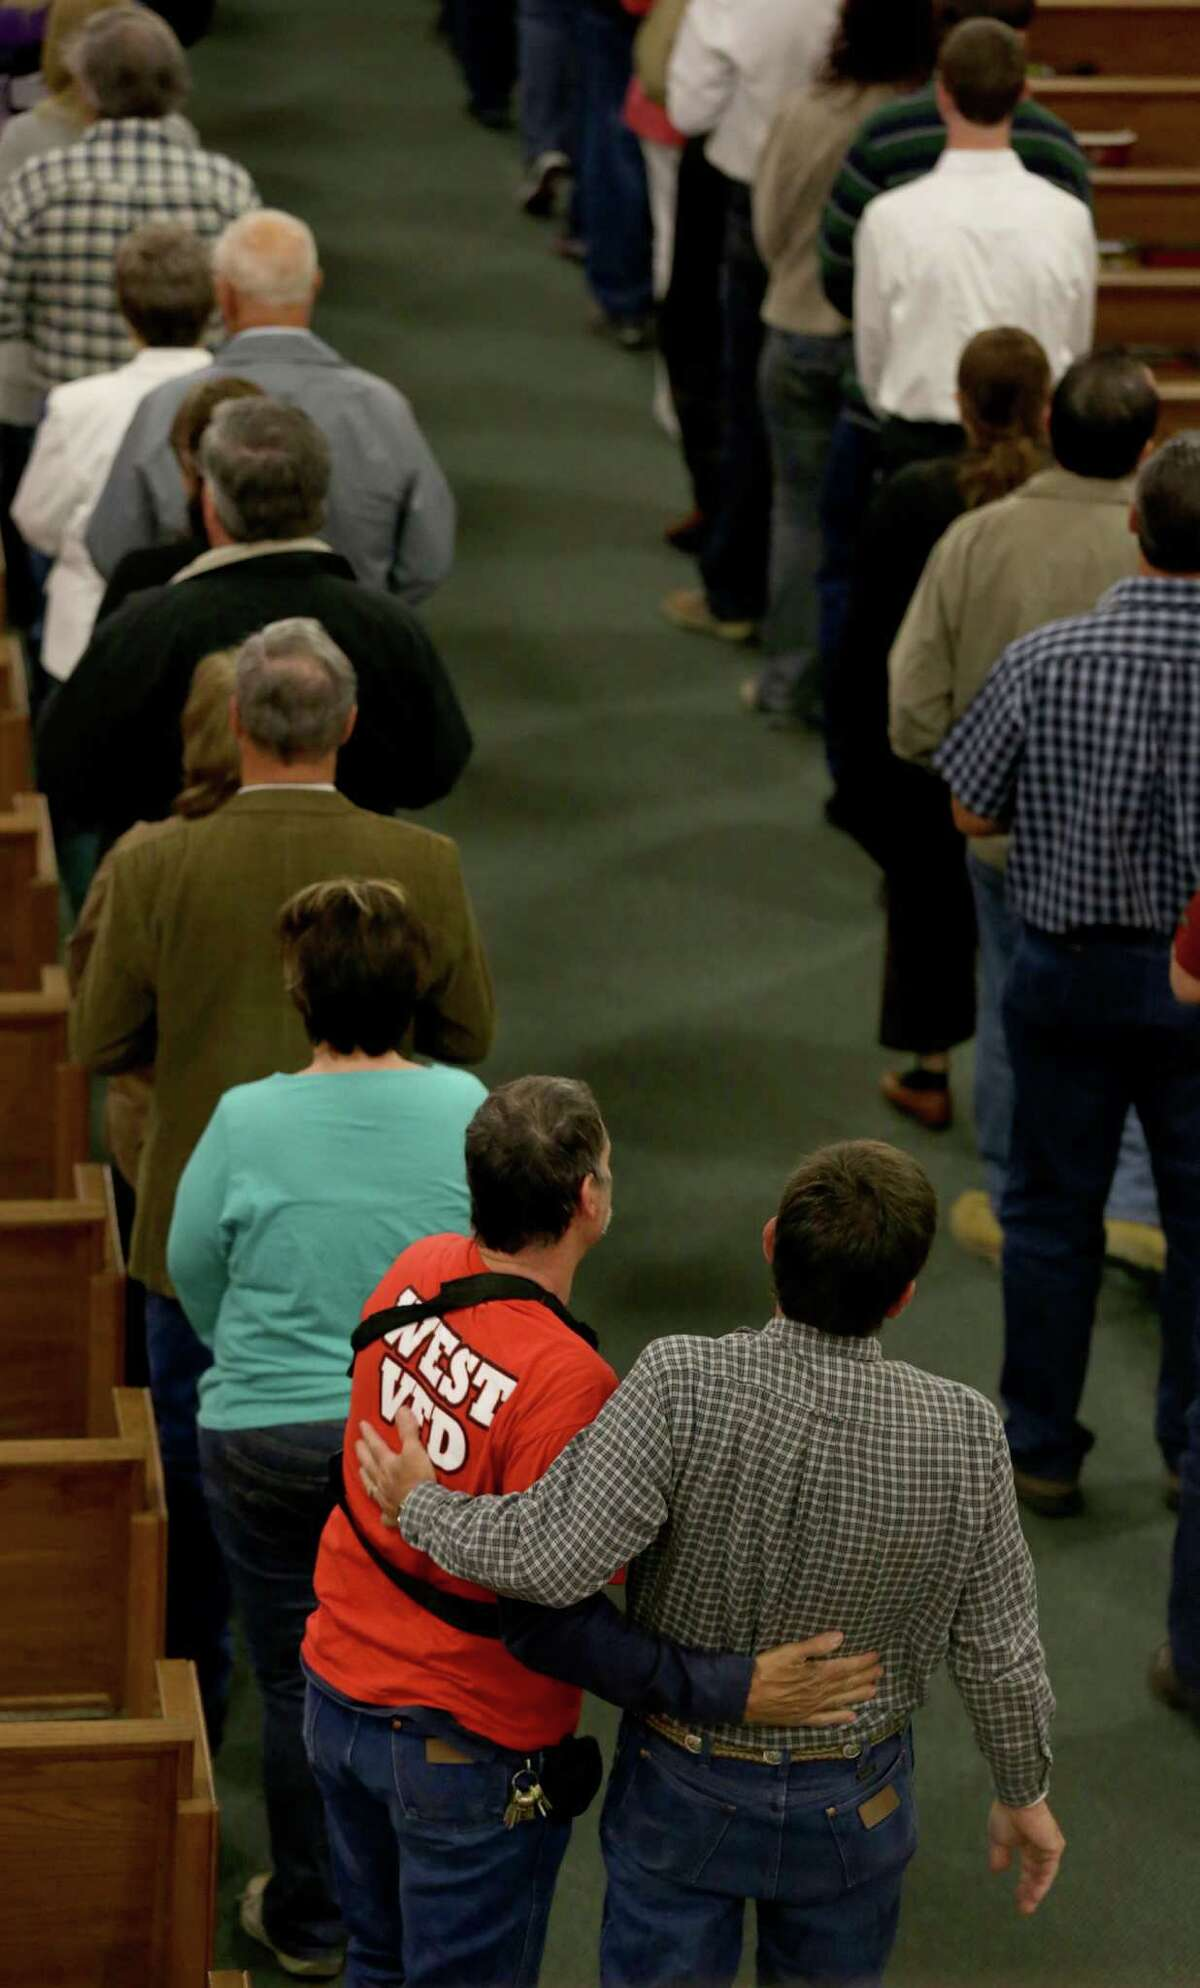 An unidentified injured member of the West VFD is greeted by a church member as they stand in line to receive communion at Church of the Assumption in West, TX on Sunday April 21, 2013.